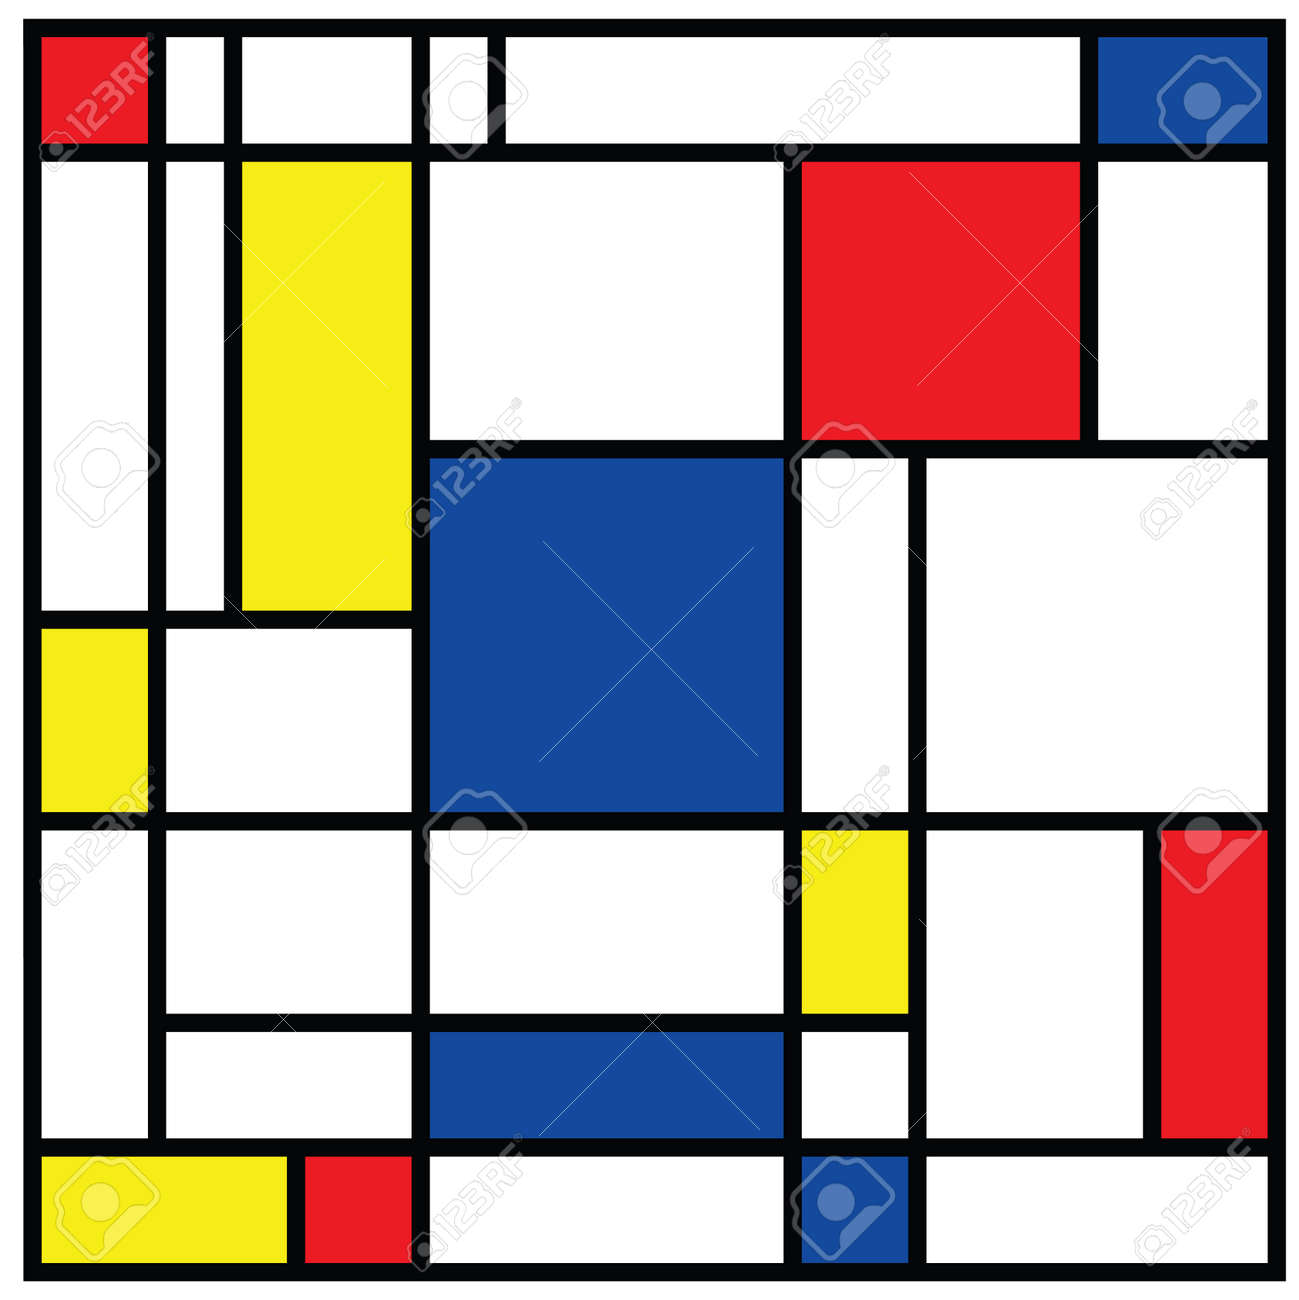 Checkered Piet Mondrian style emulation. The Netherlands art history and Holland painter. Dutch mosaic or checker line pattern banner or card. Geometric seamless elements Retro pop art pattern. - 154929946